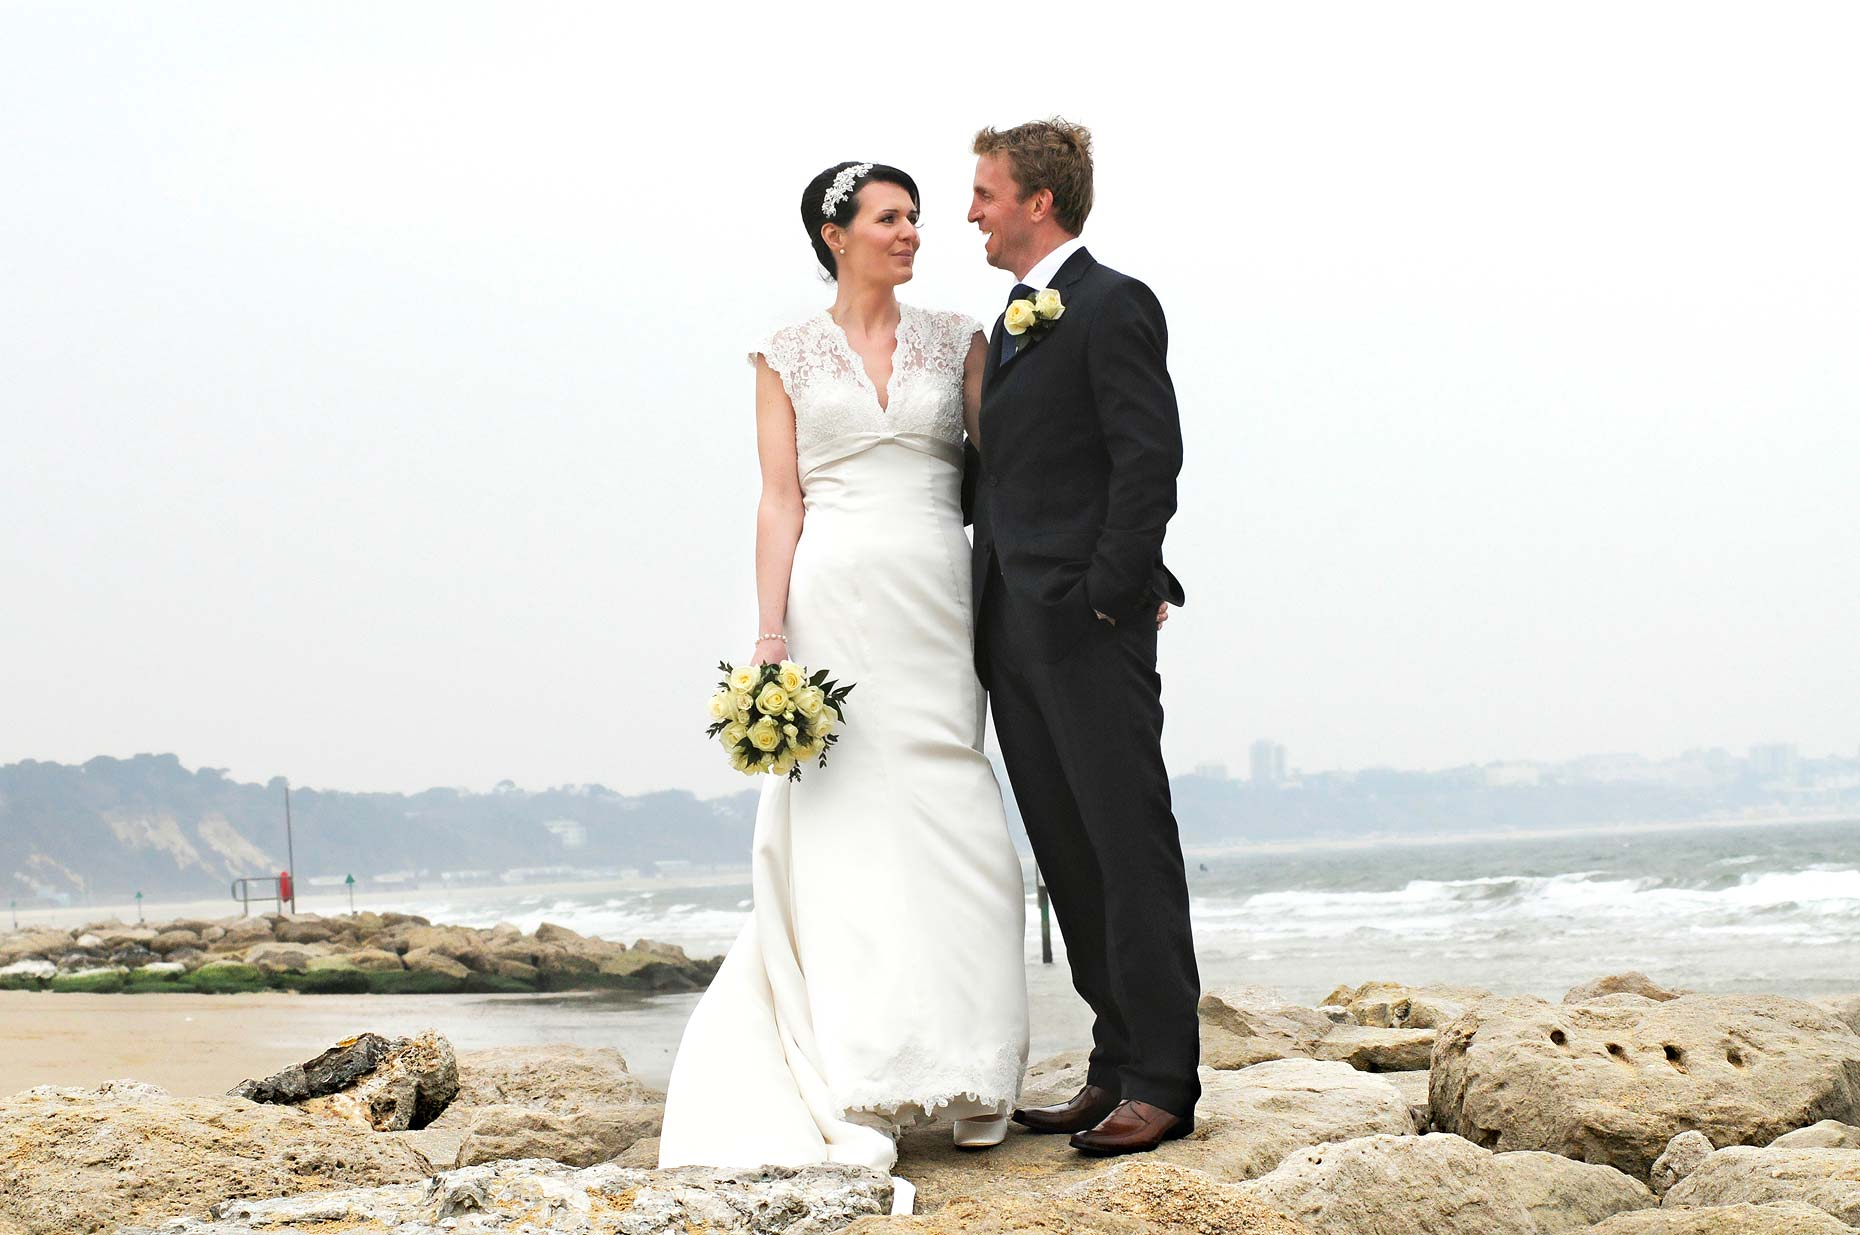 0074-Cafe-Shore-Wedding-Portraits-Sandbanks-Beach-Poole-Dorset.jpg